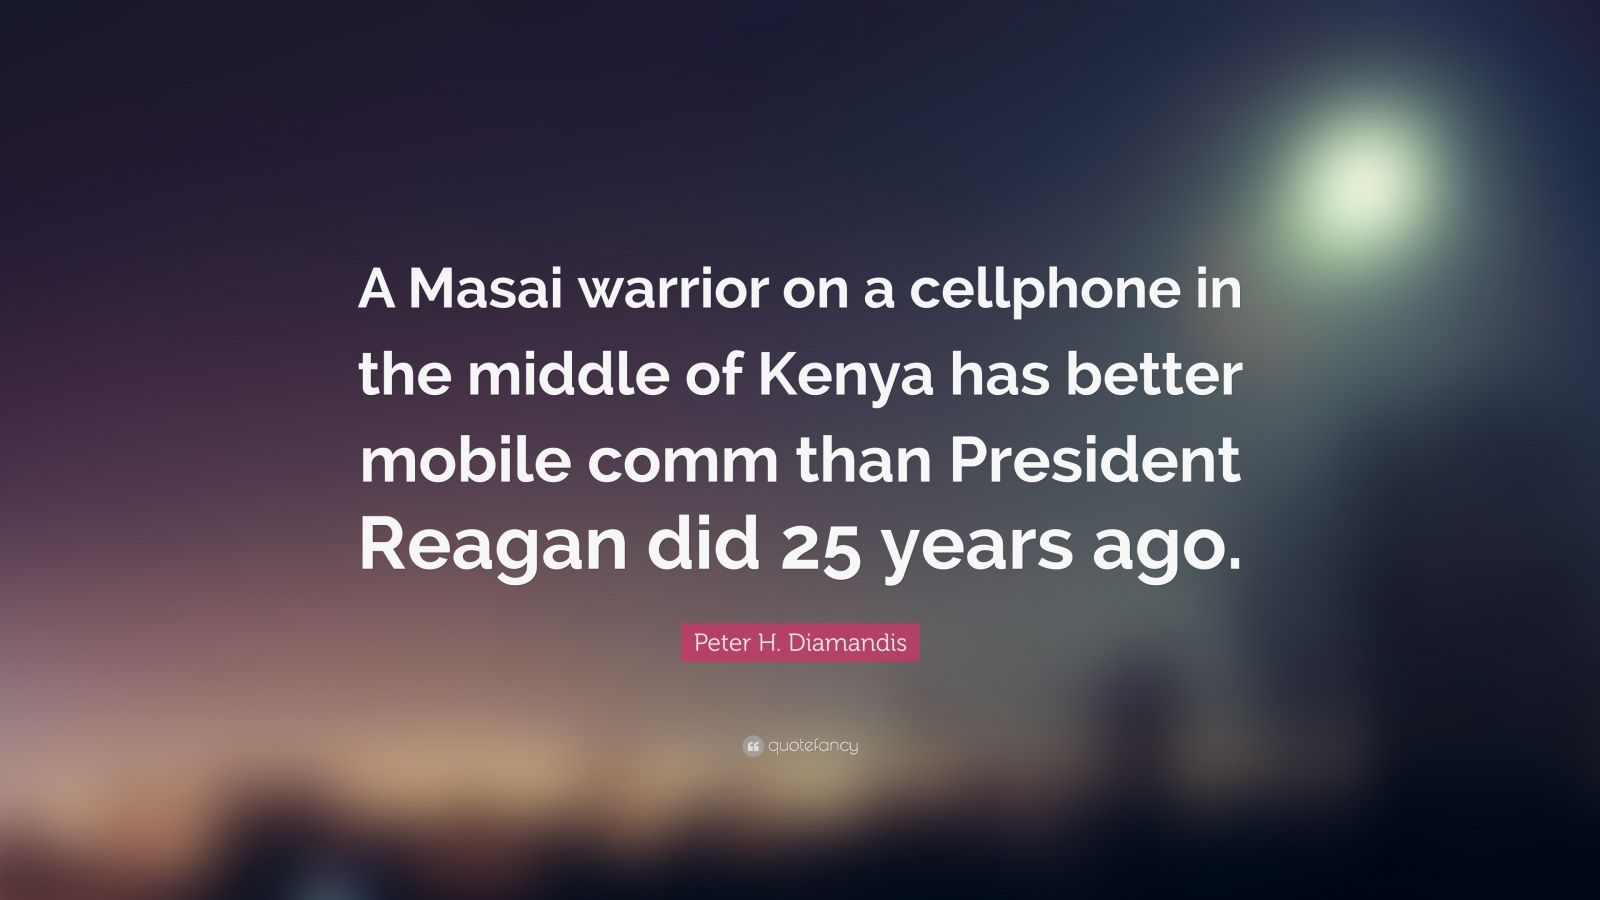 "Peter H. Diamandis Quote: ""A Masai warrior on a cellphone in the middle of Kenya has better mobile comm than President Reagan did 25 years ago."""